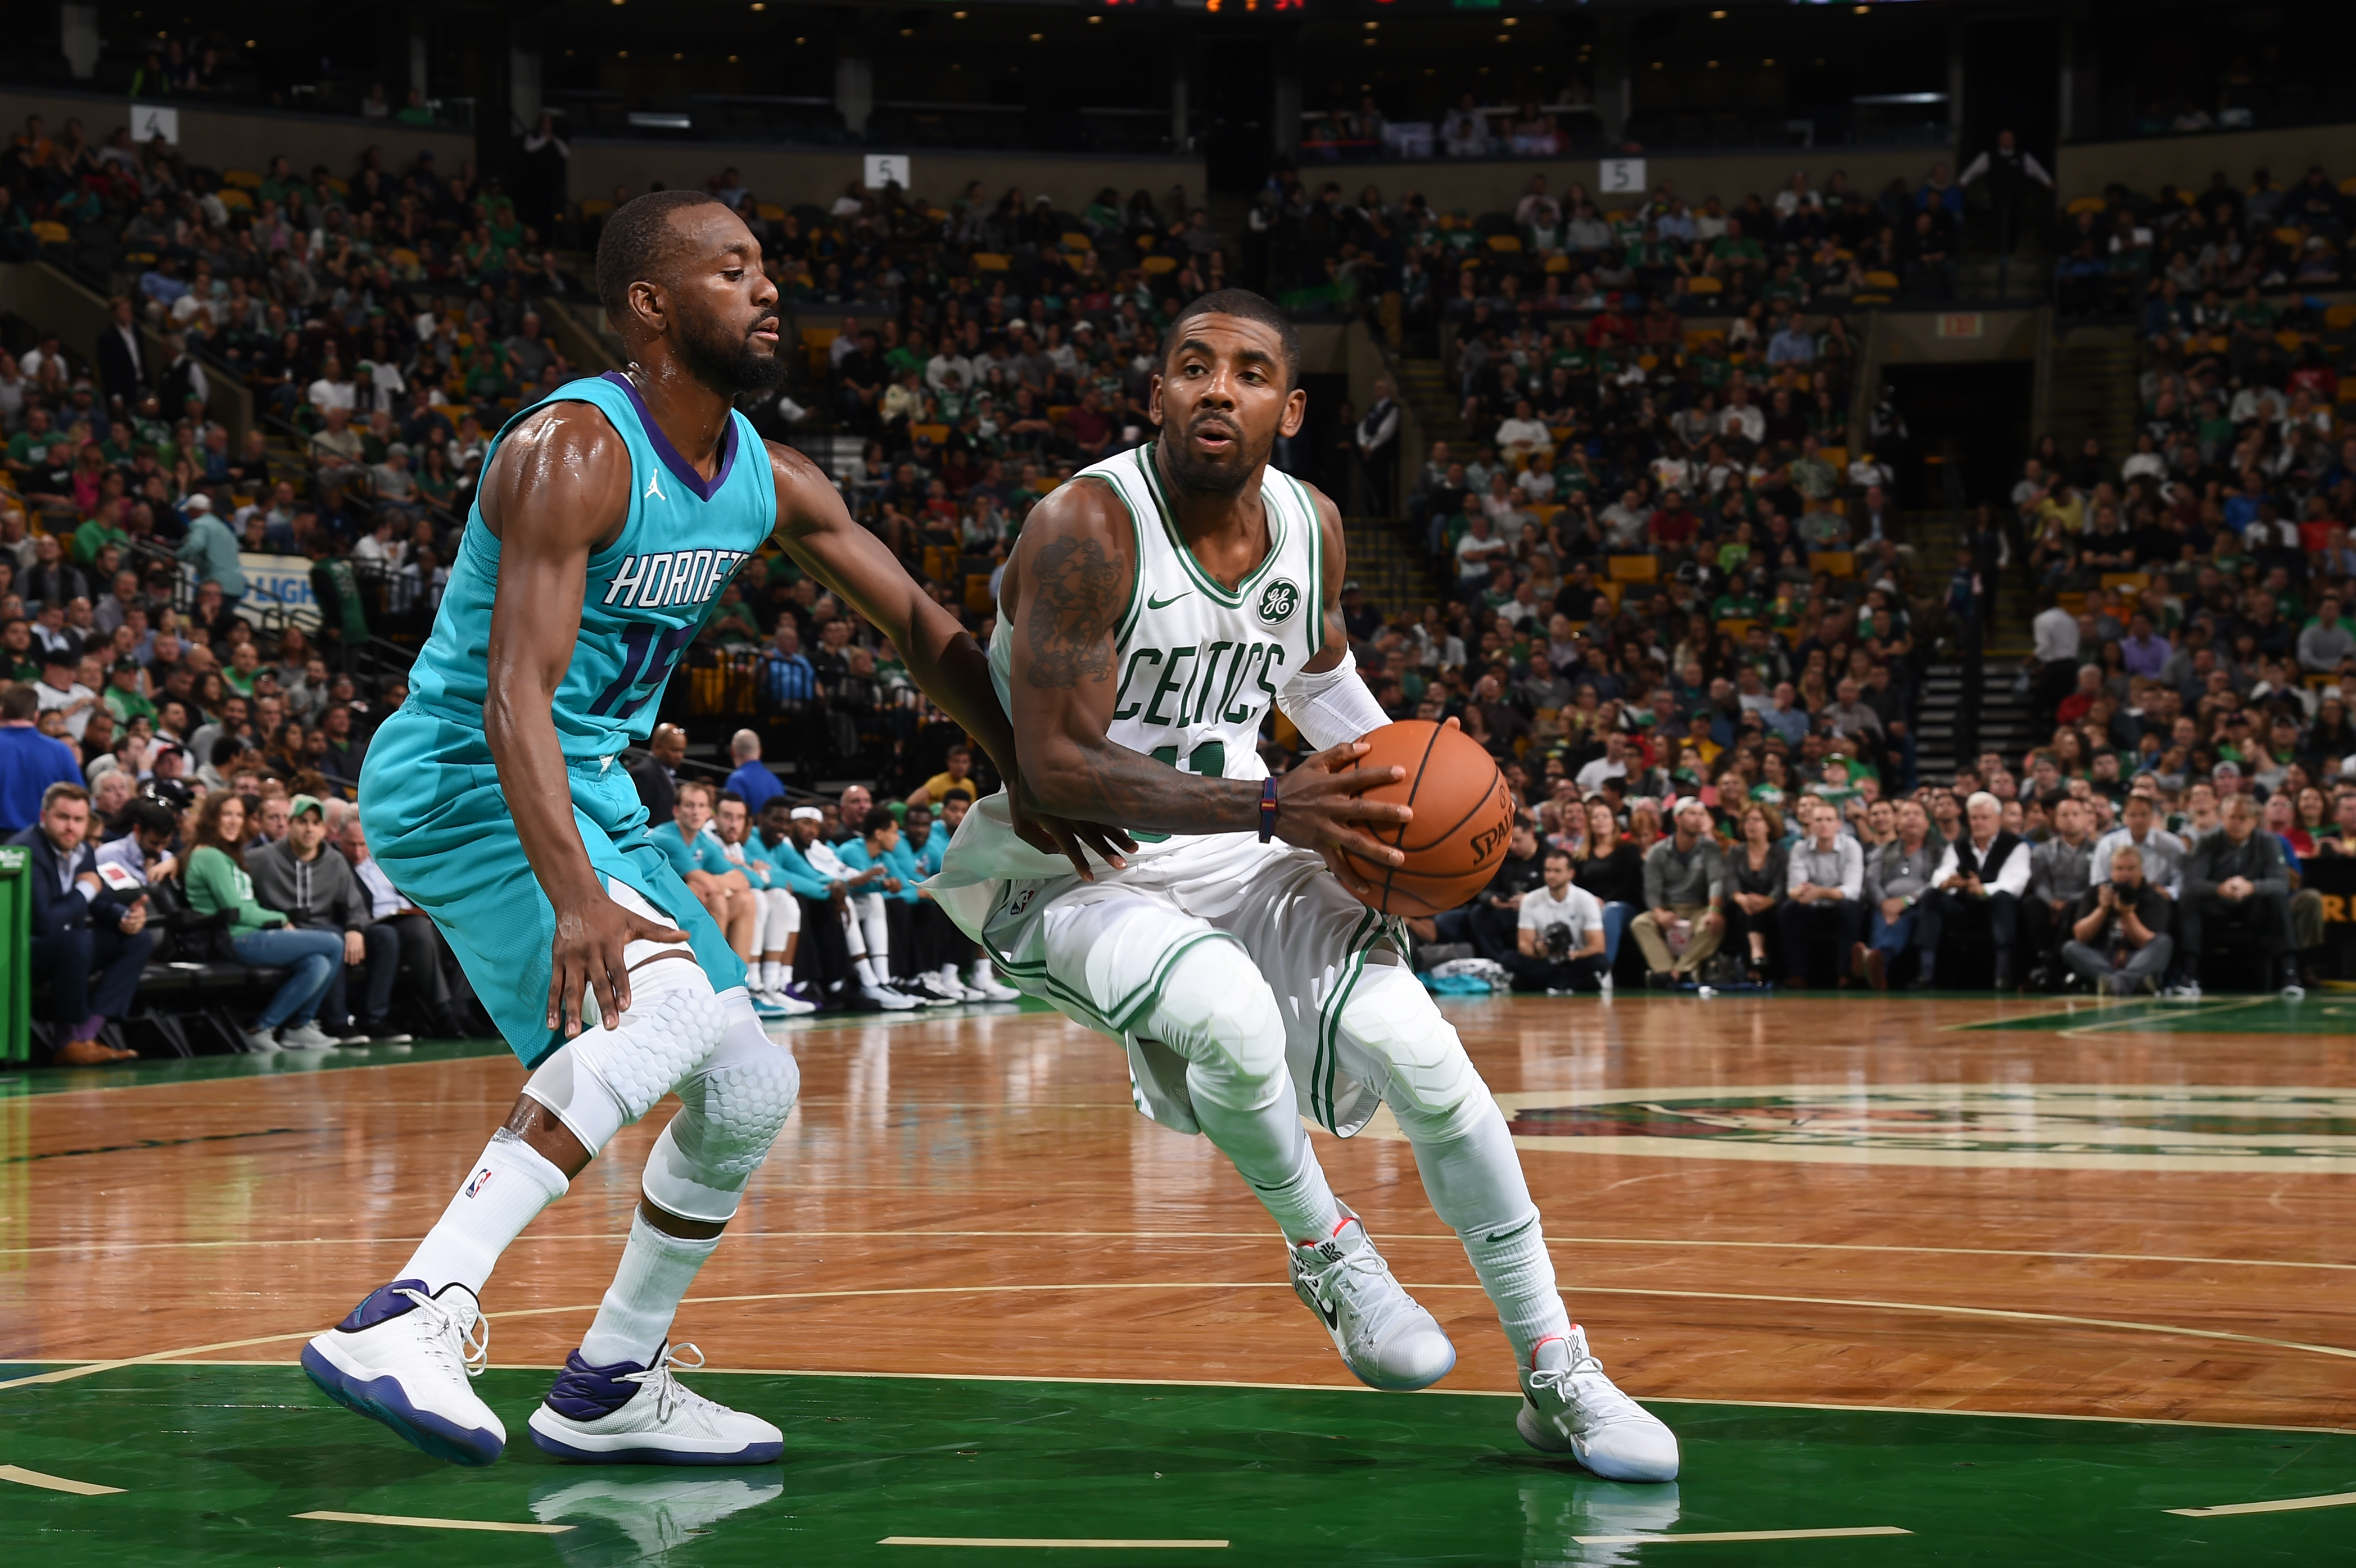 boston celtics vs charlotte hornets live stream free